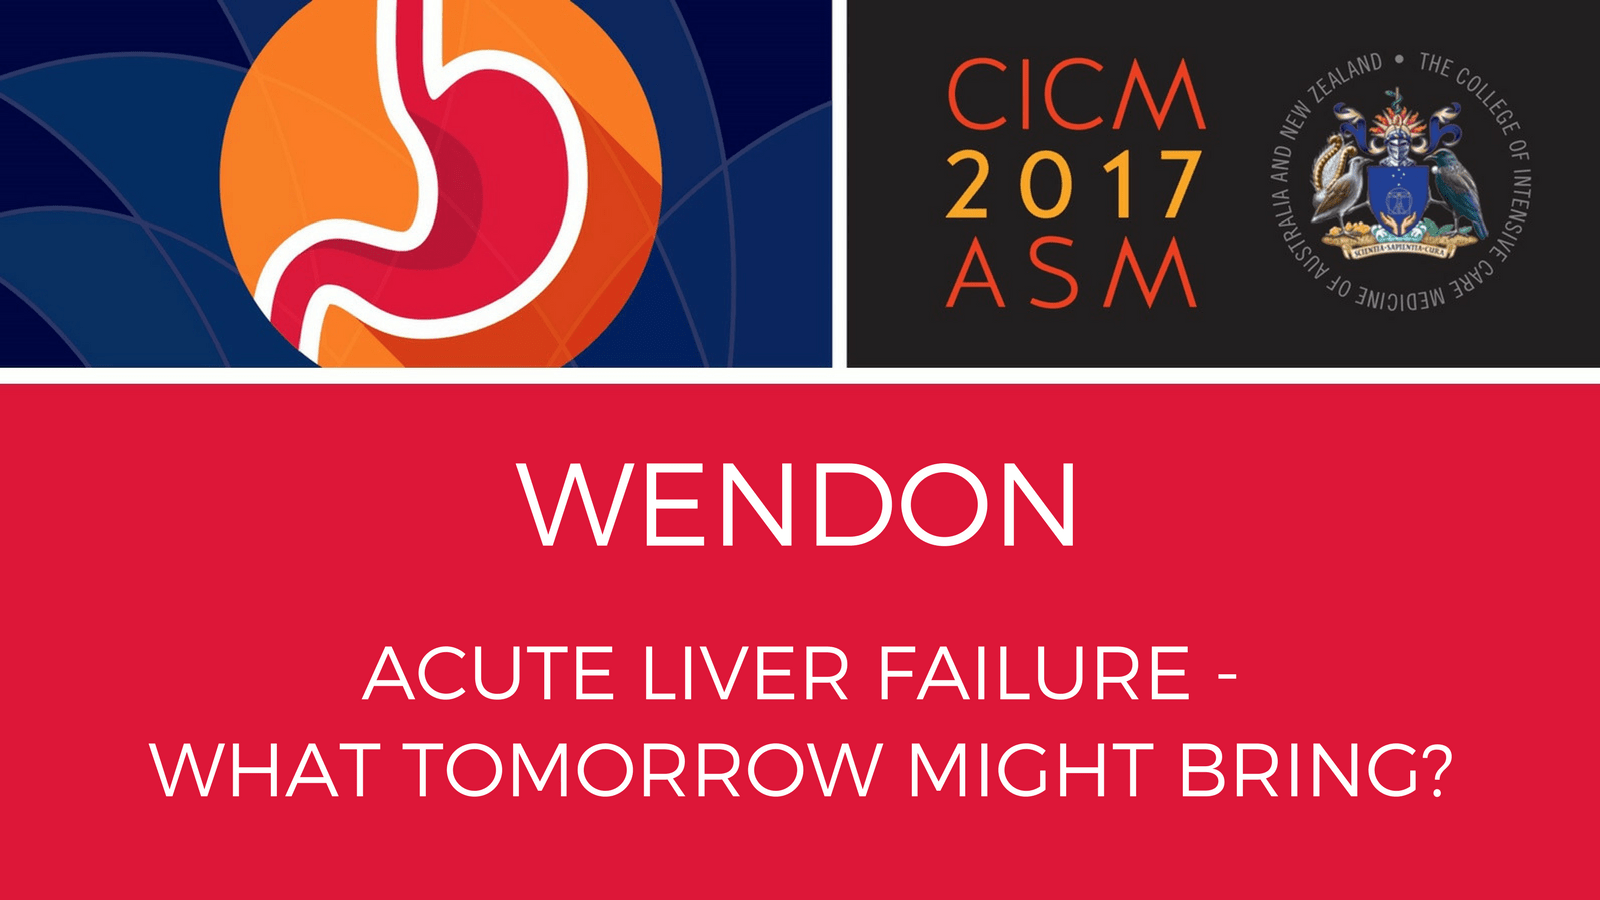 Acute Liver Failure - What tomorrow might bring?